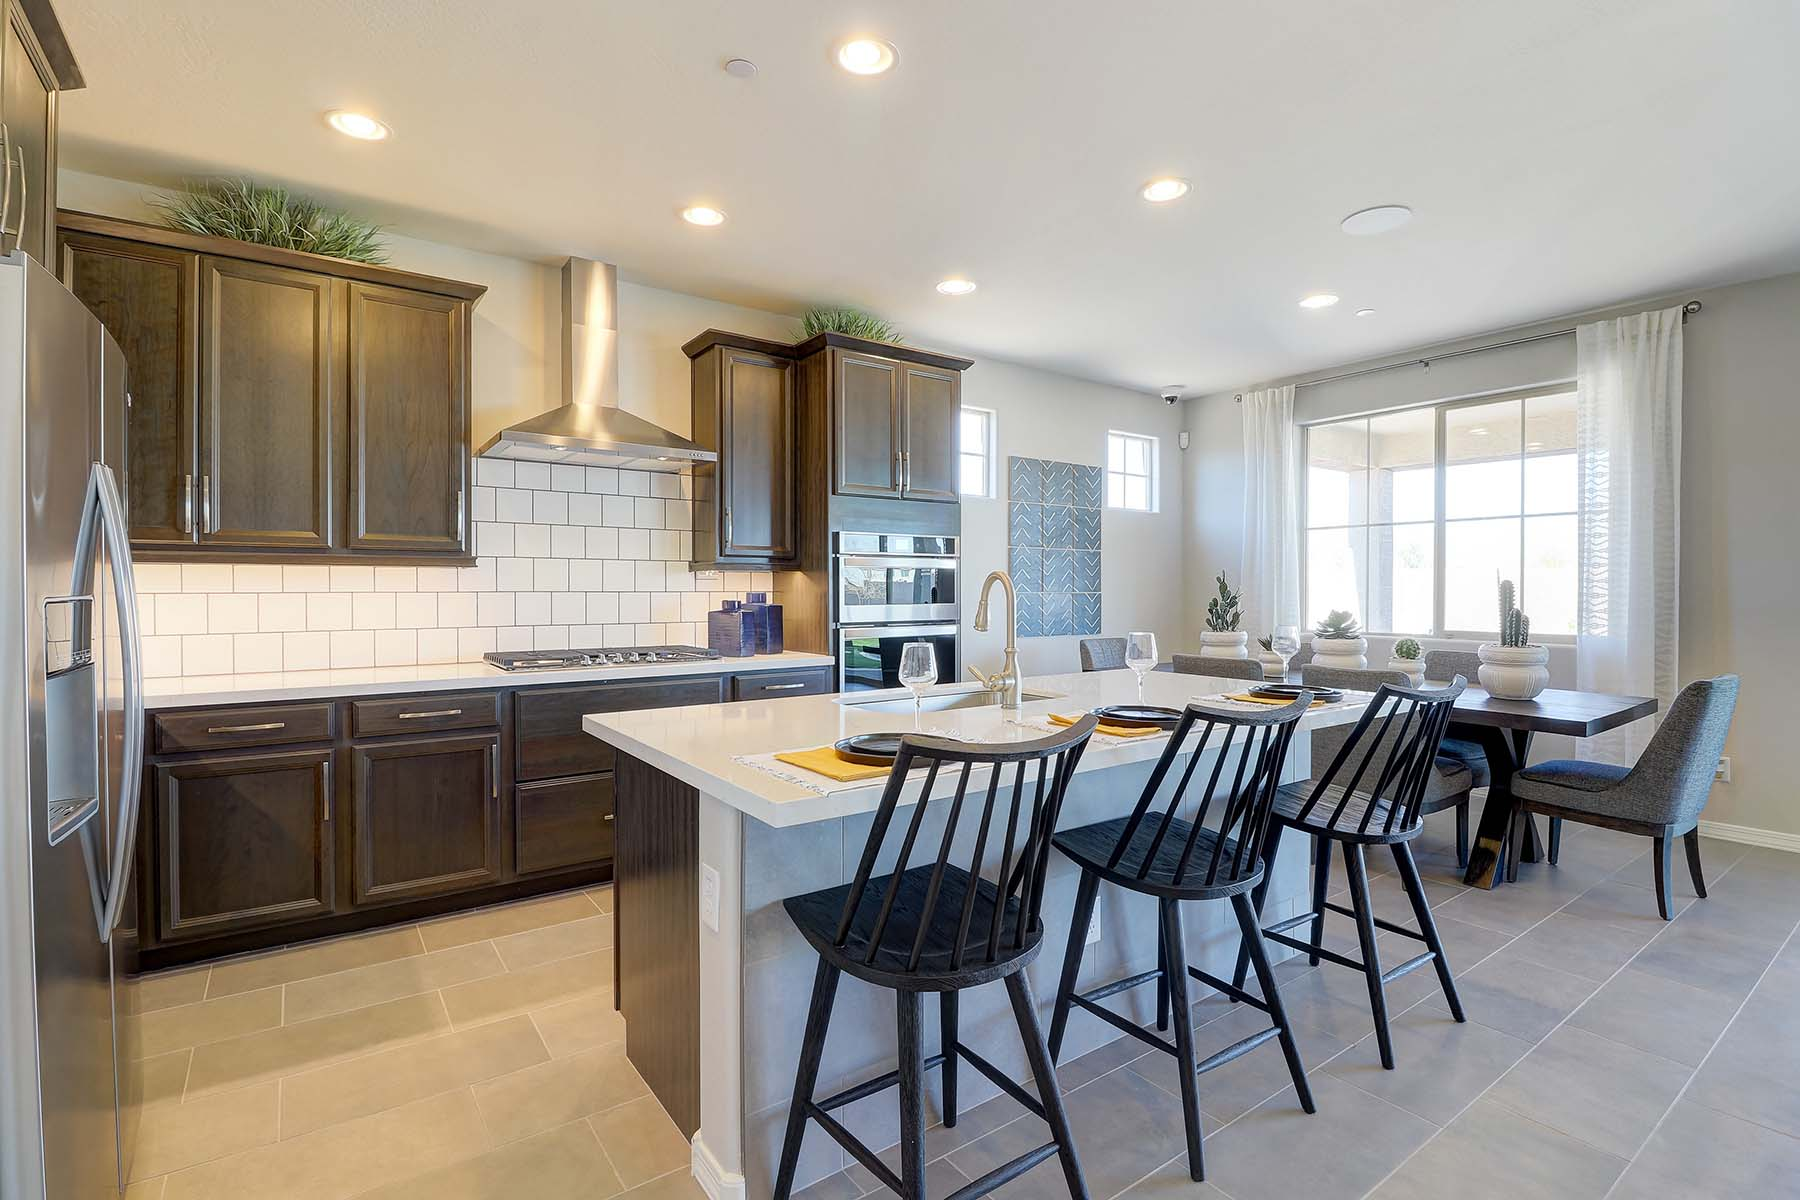 Willowleaf Plan Kitchen at Brookside at Arroyo Seco in Buckeye Arizona by Mattamy Homes